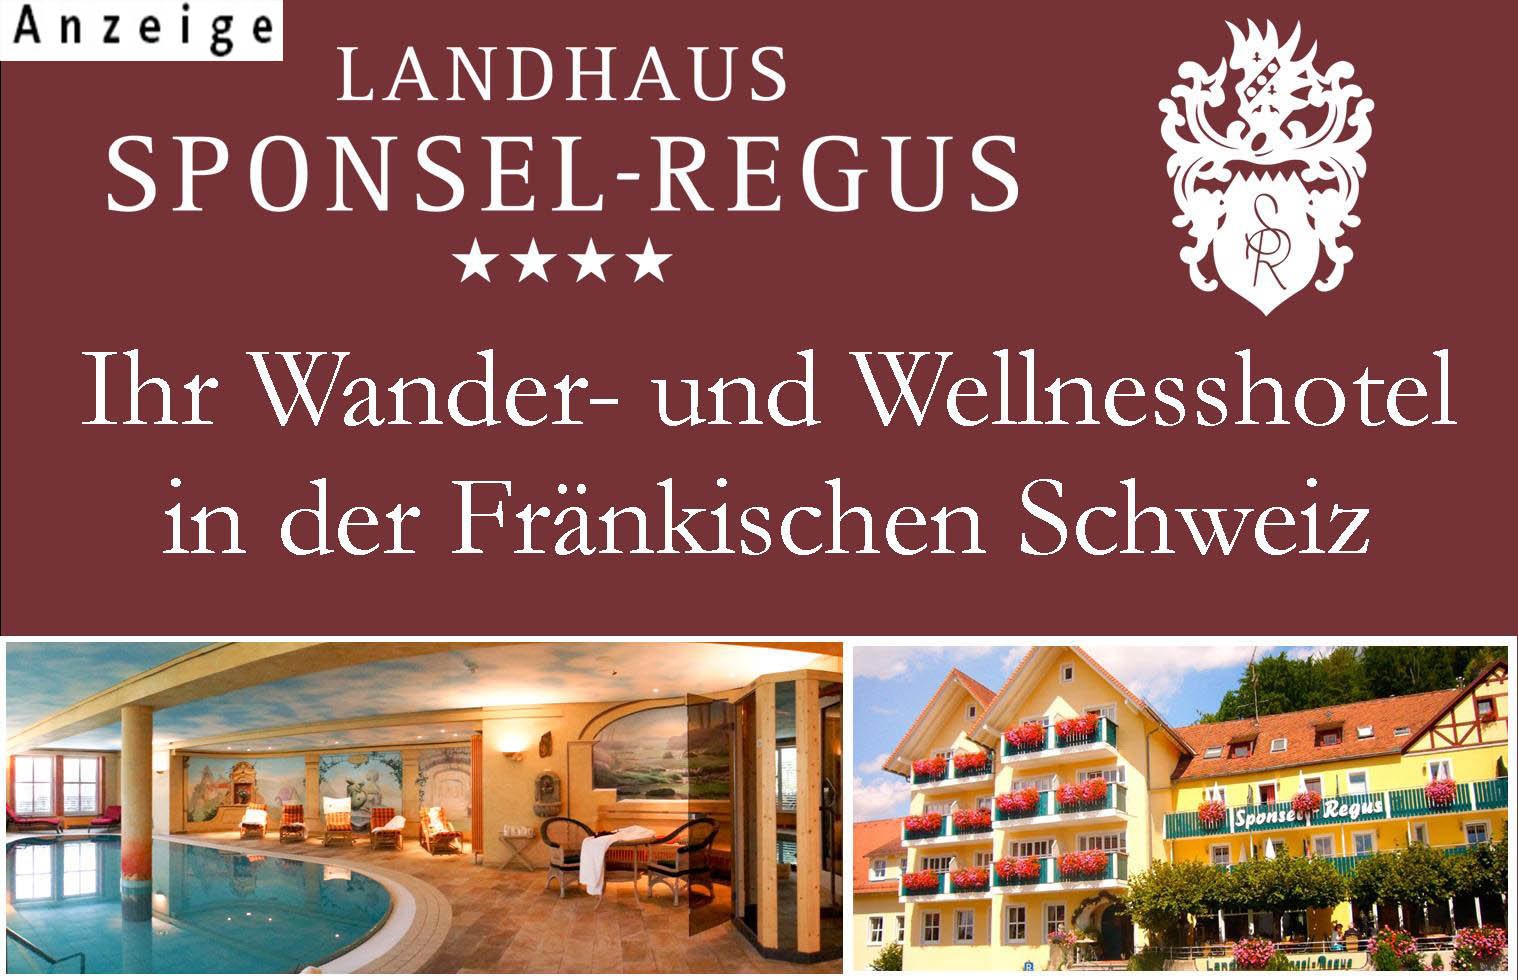 Landhaus Sponsel Regus